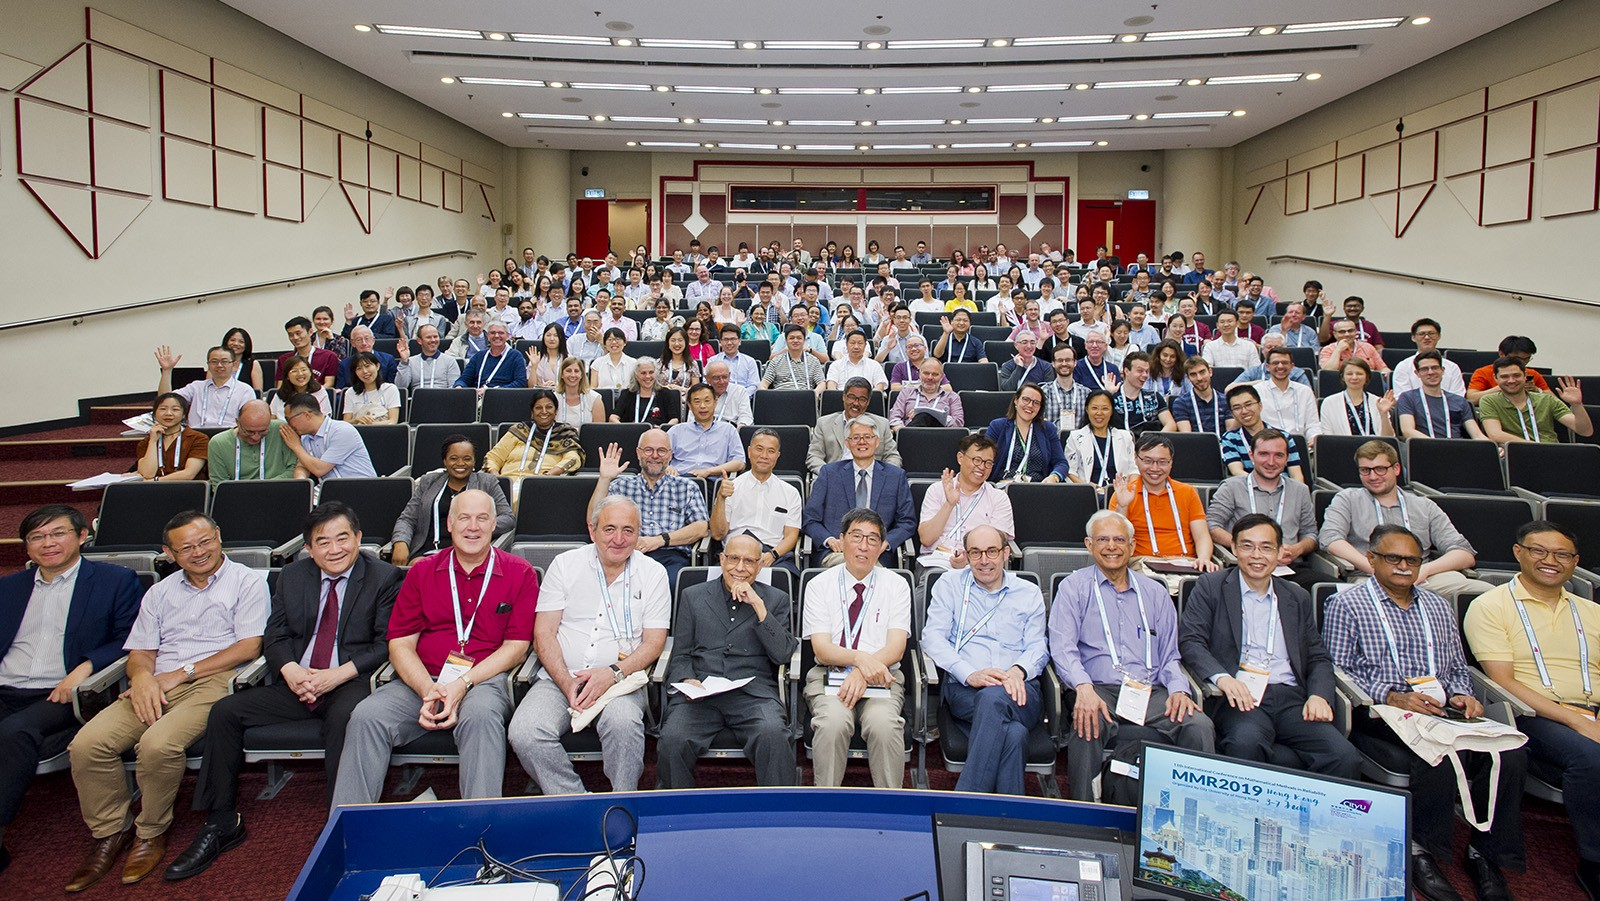 The 11th International Conference on Mathematical Methods in Reliability is being held from 3 to 7 June at CityU.